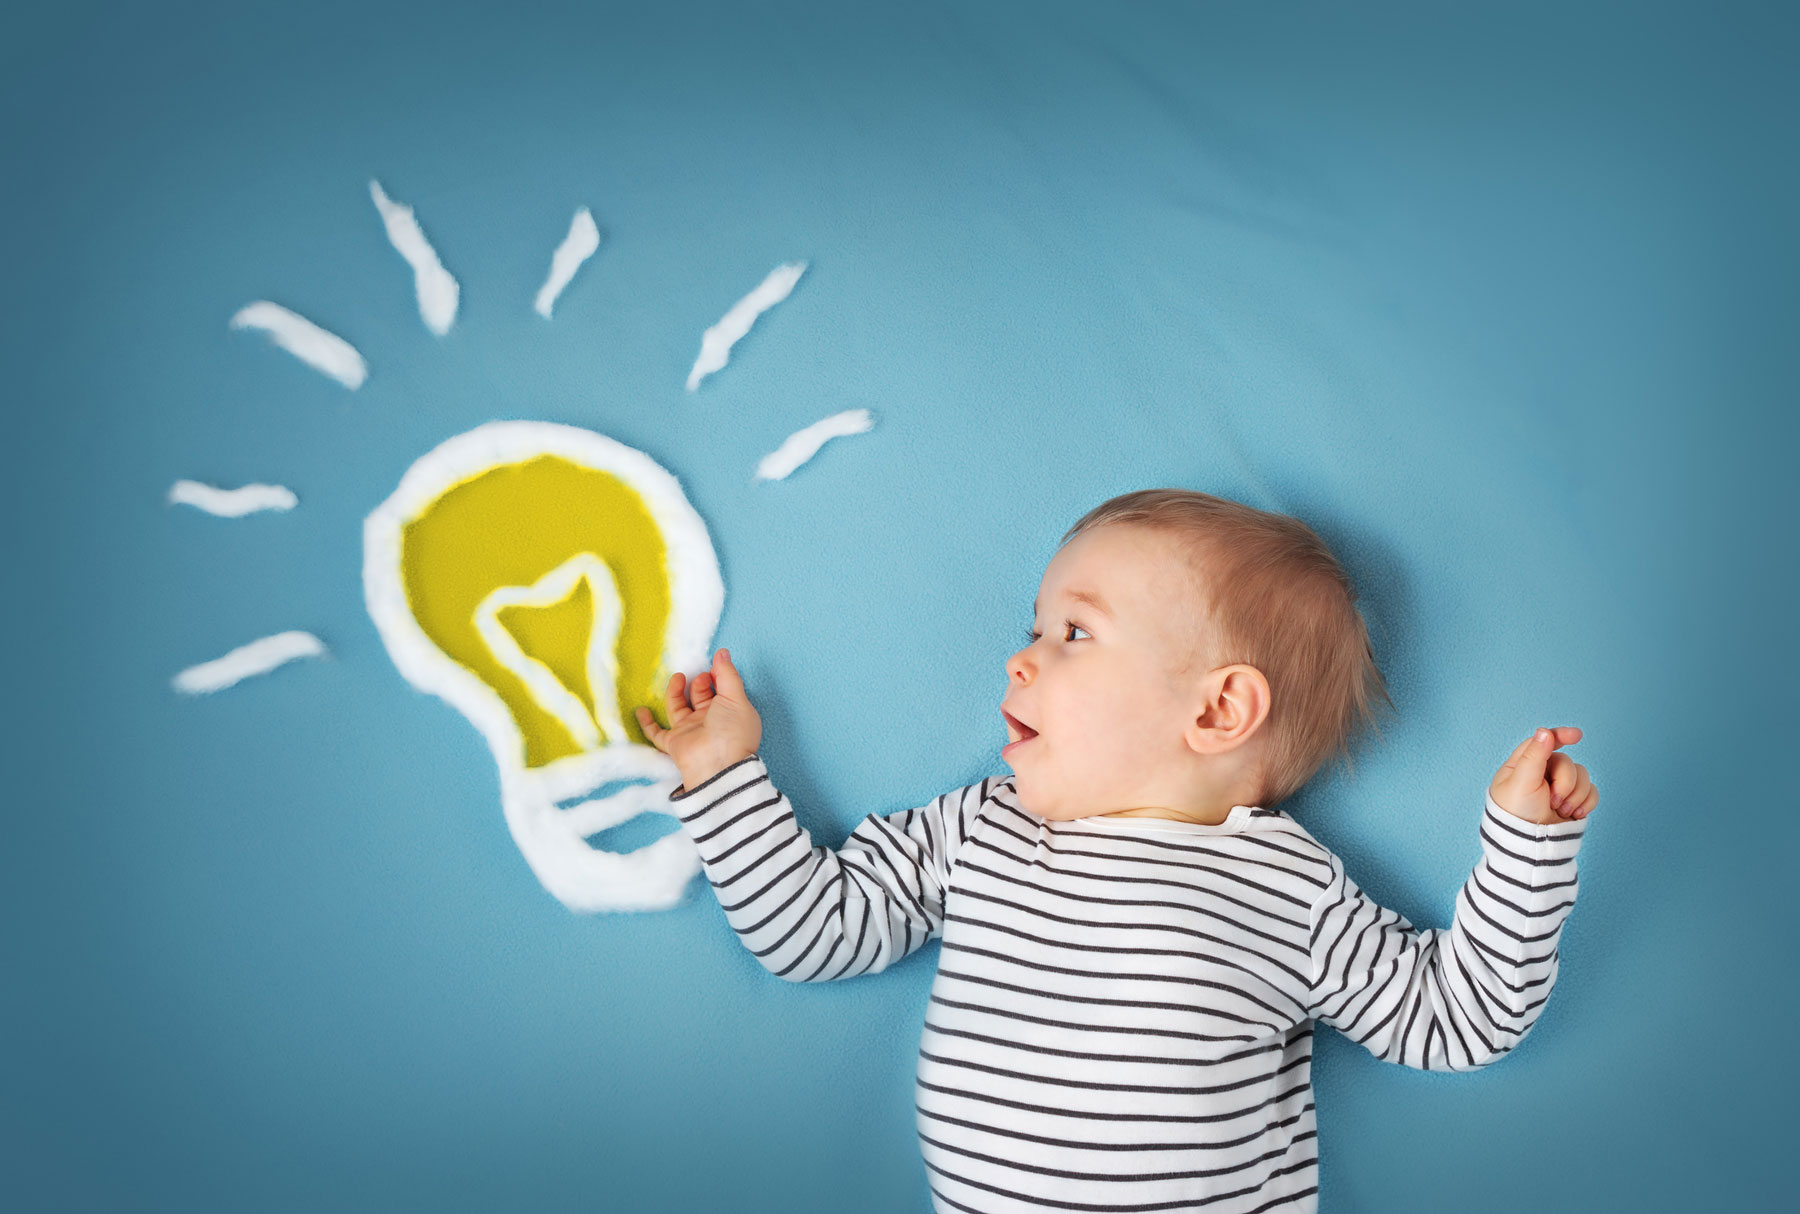 baby looking at light bulb sketch